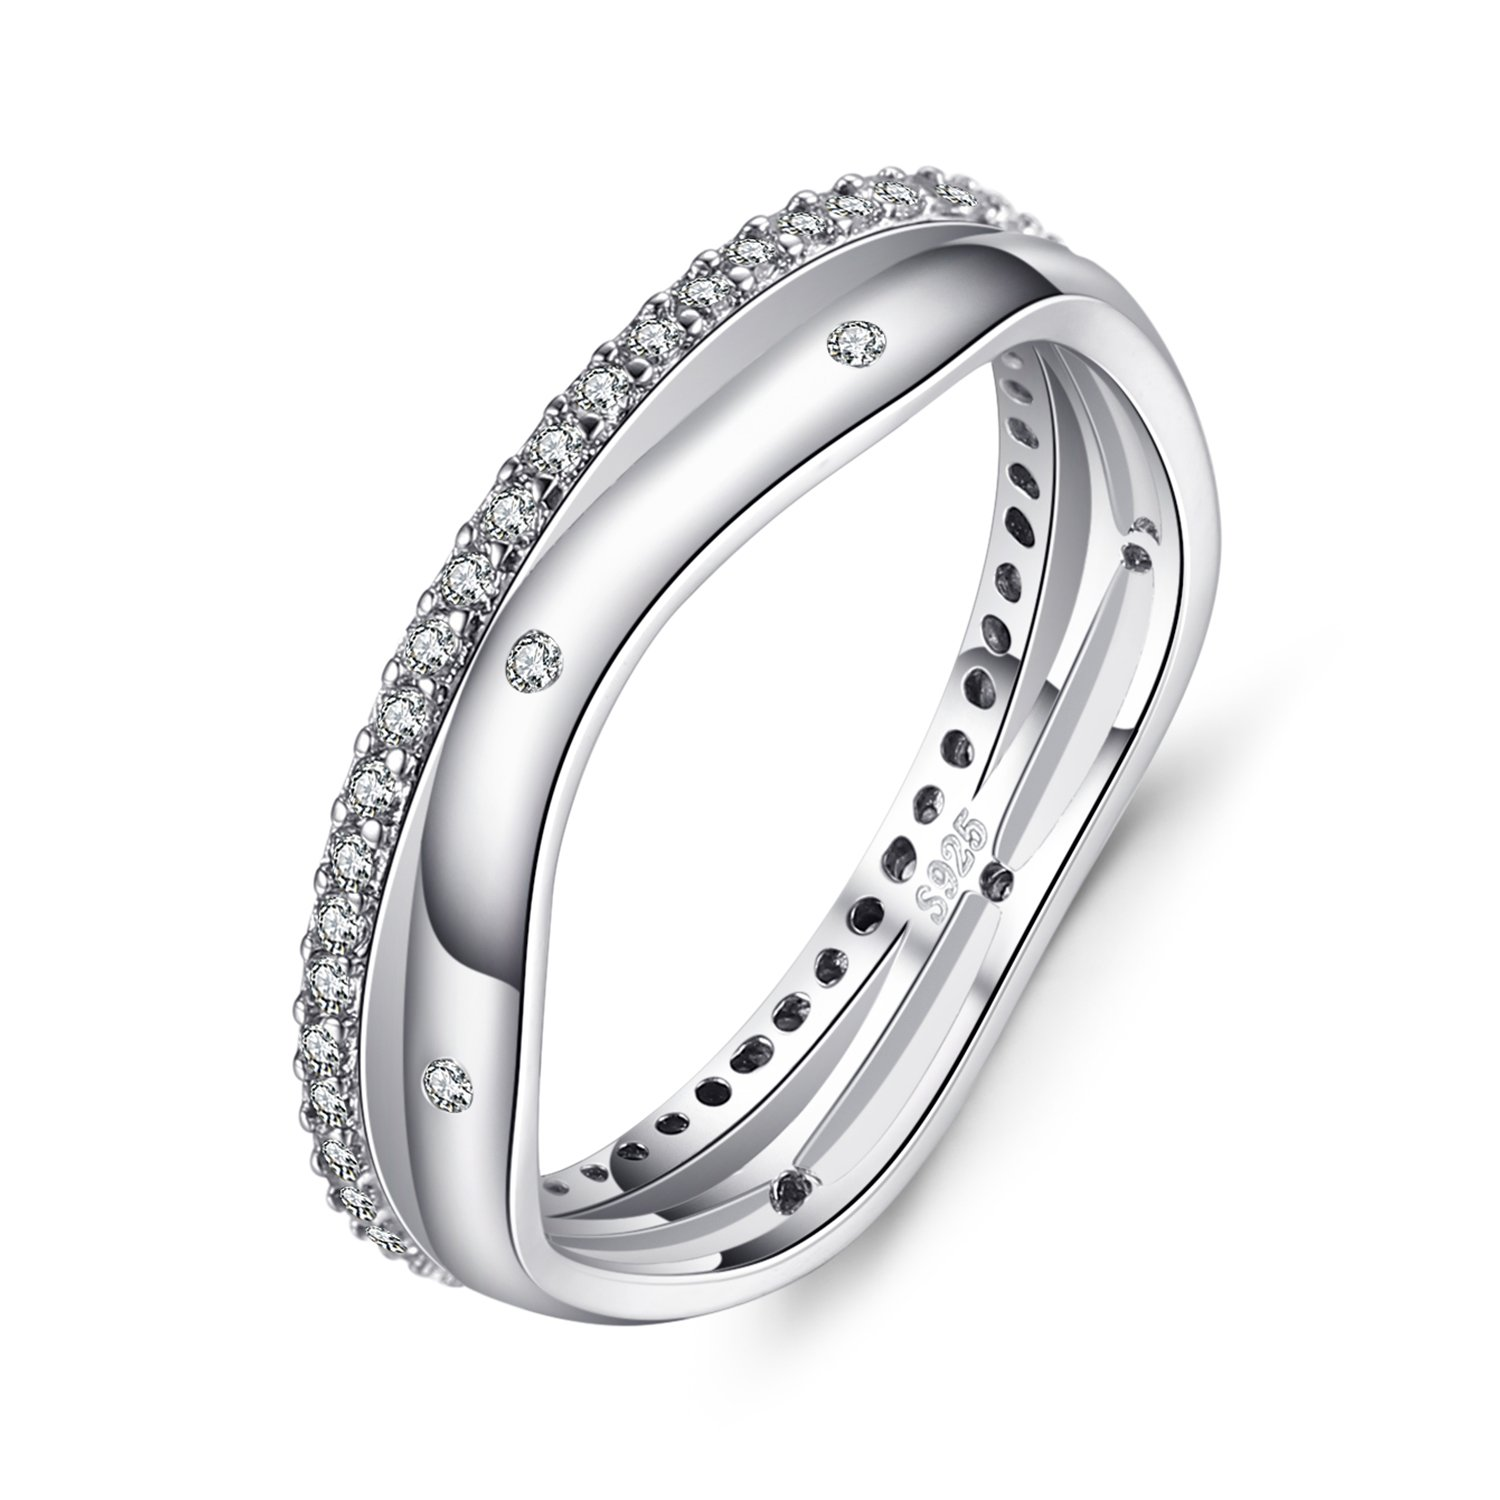 JewelryPalace Women's Cubic Zirconia 925 Sterling Silver Wedding Band Anniversary Engagement Ring BR474599